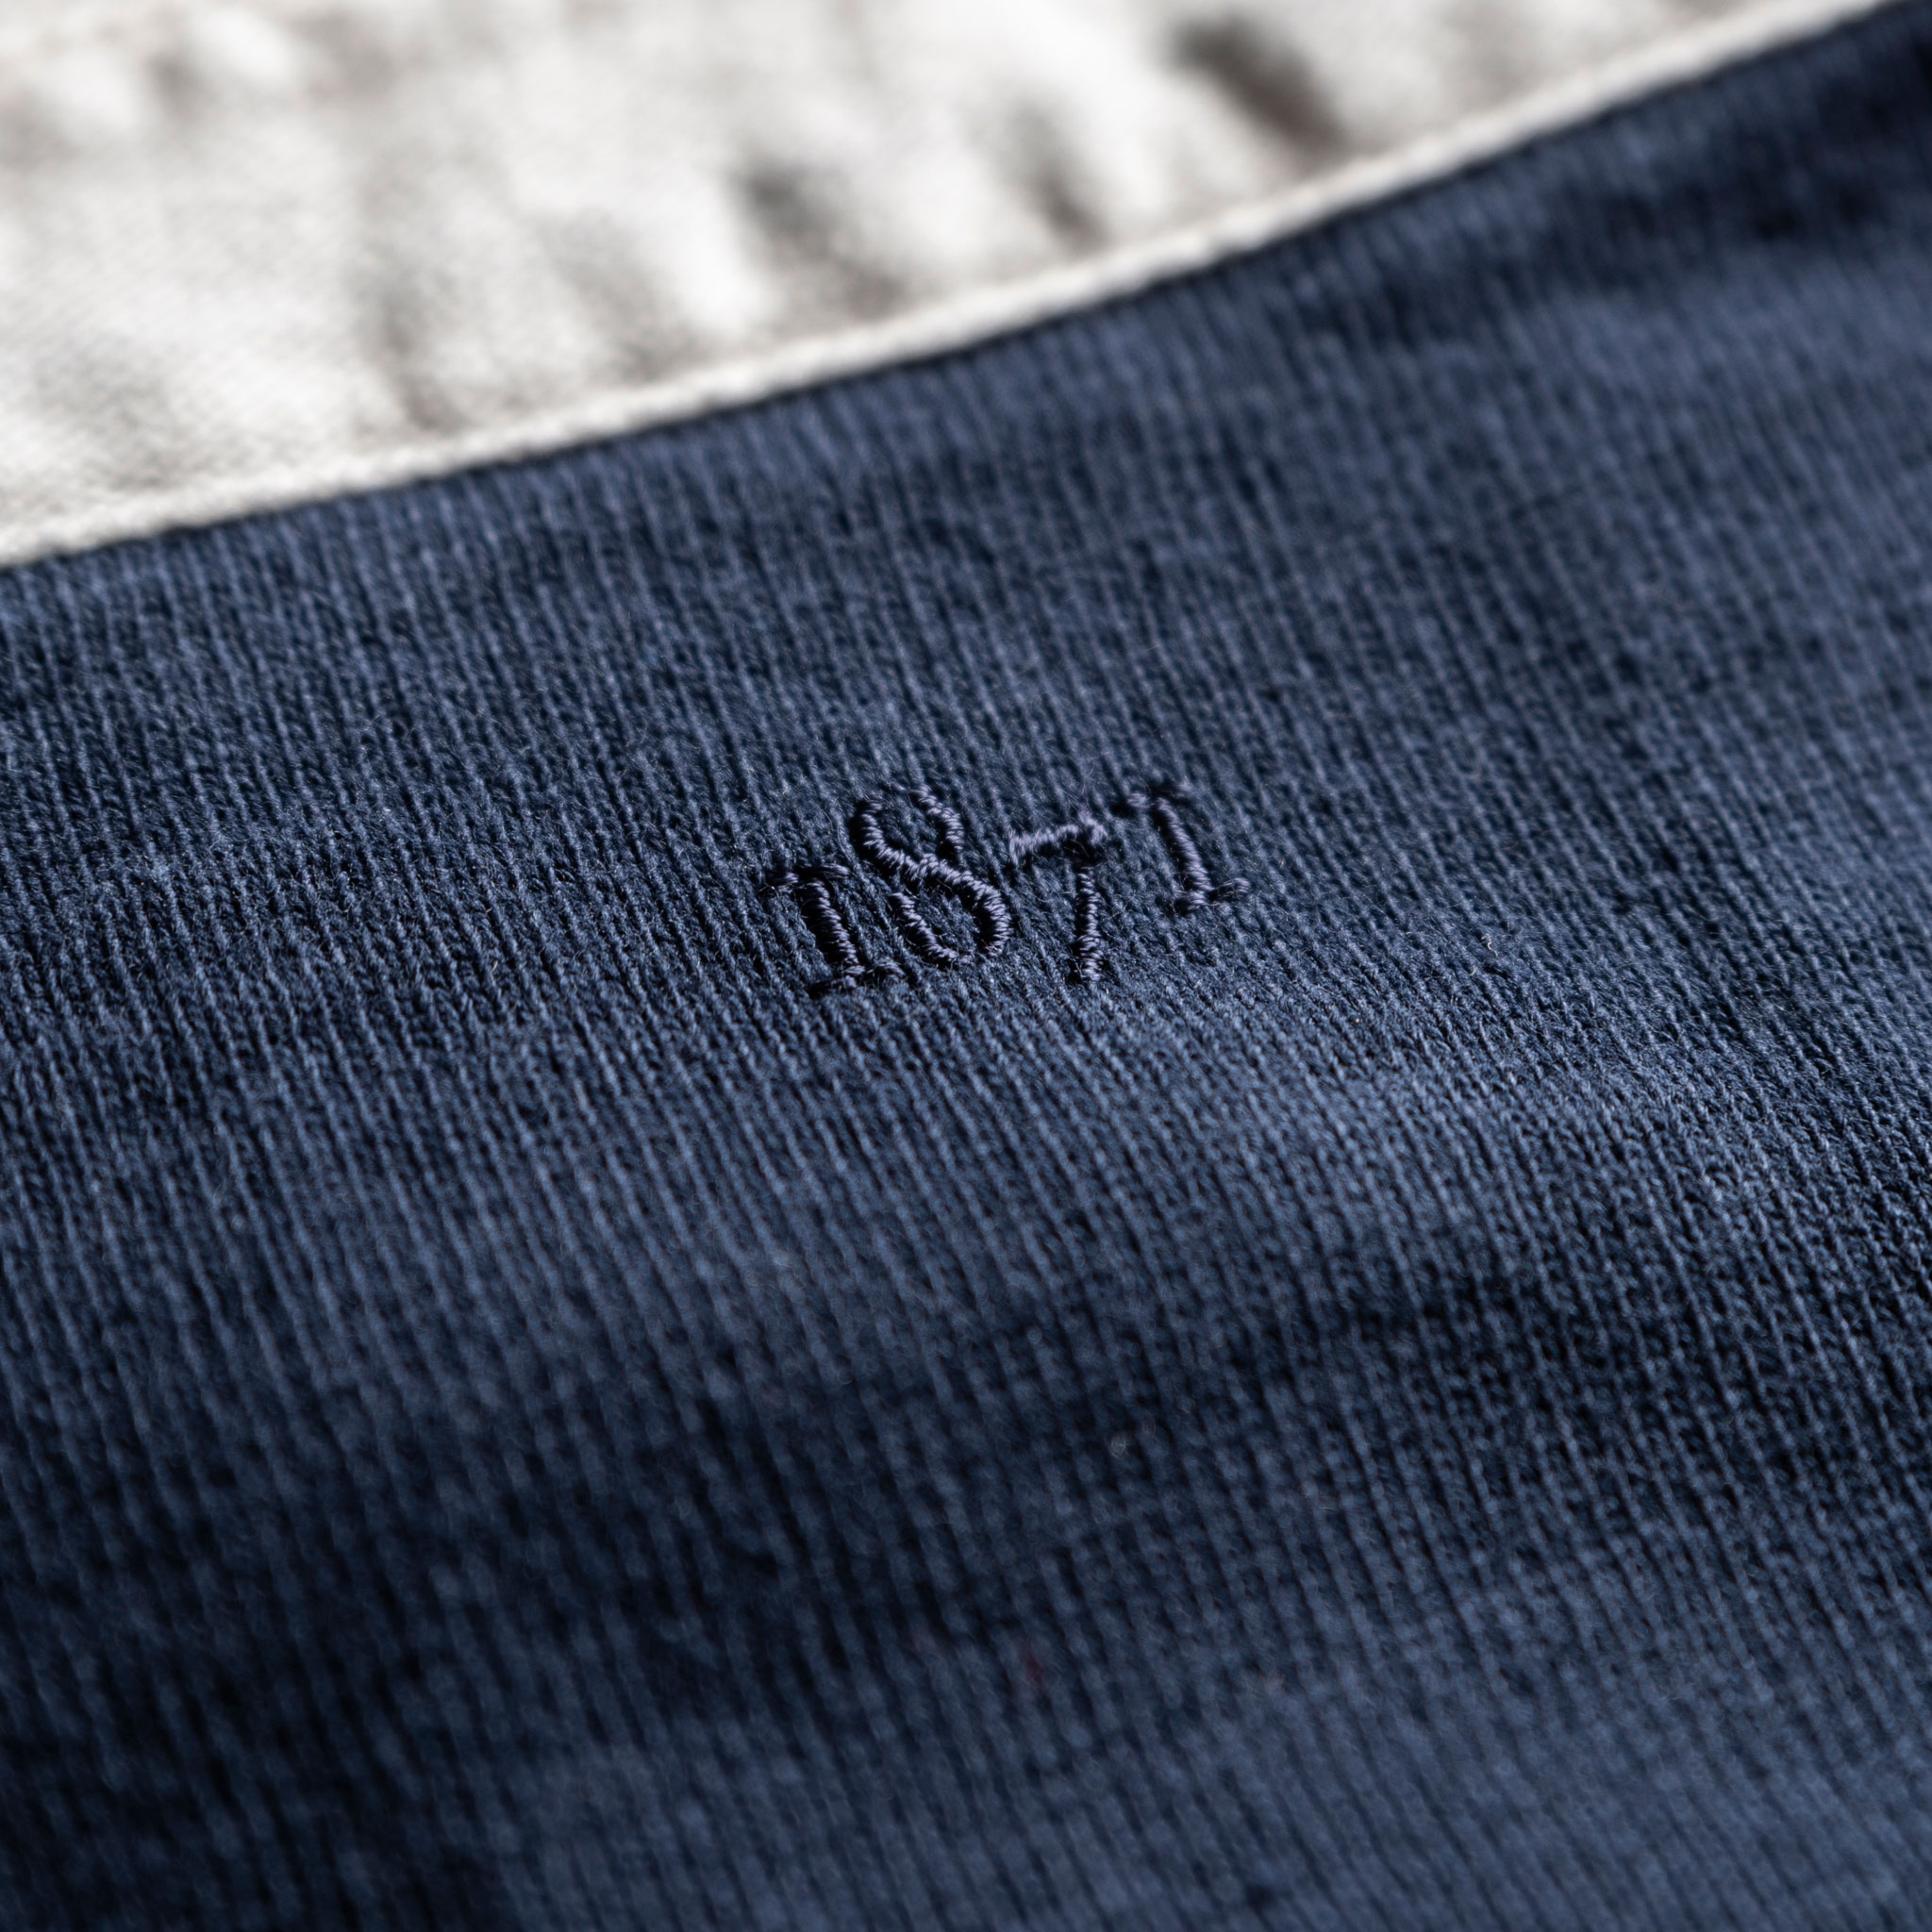 Women's Classic Navy Blue 1871 Vintage Rugby Shirt_1871